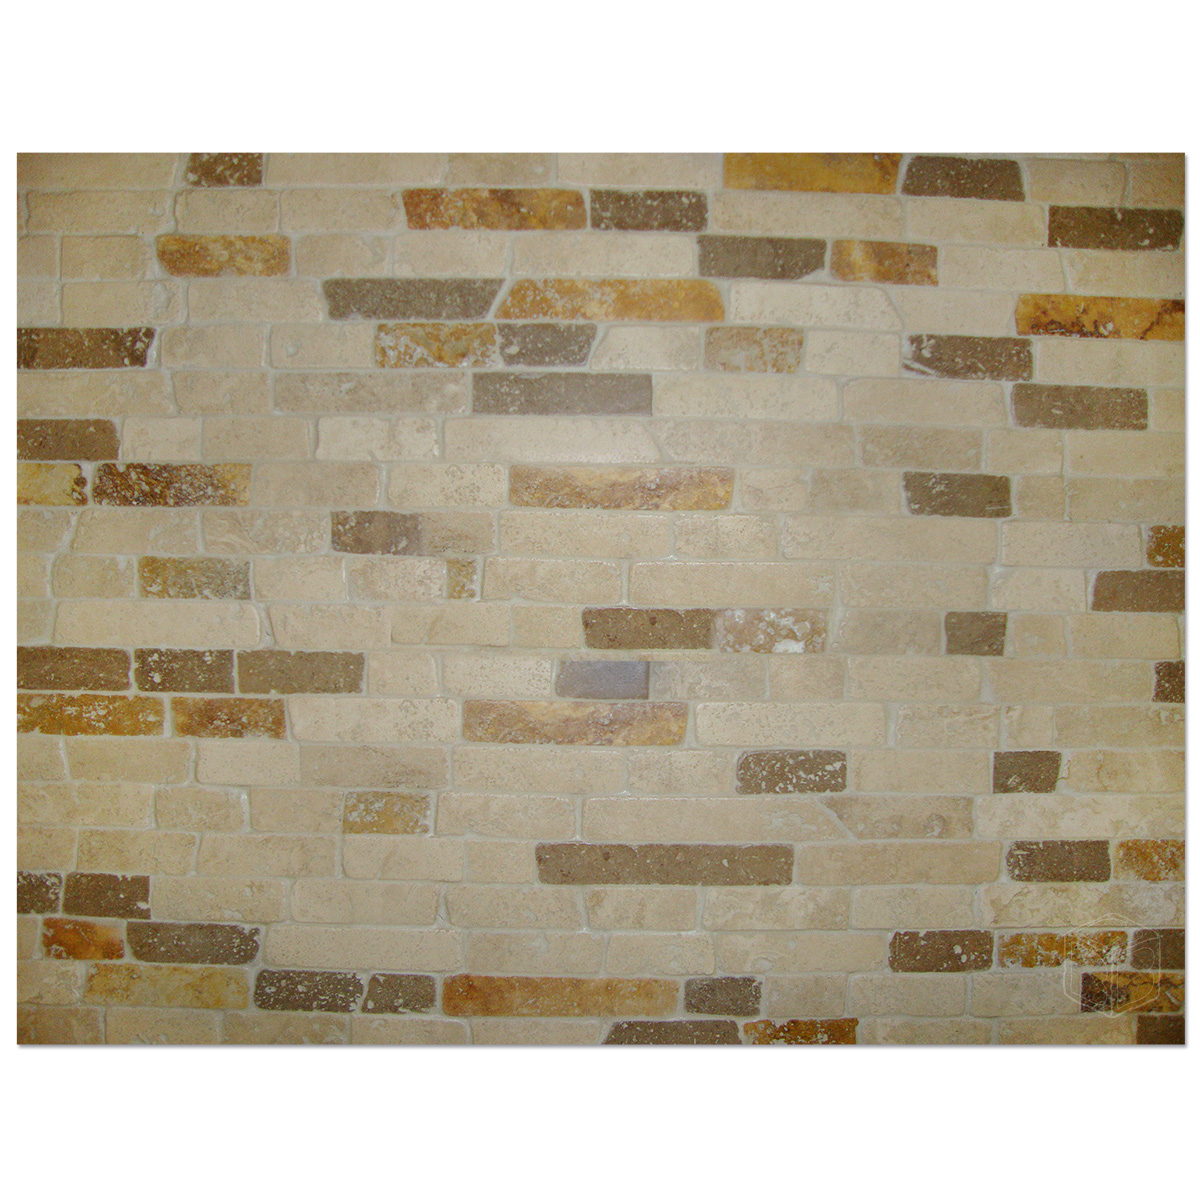 12 X 12 Travertine Mix Brick Split Facetumbled Mesh Mounted Mosaic Tile